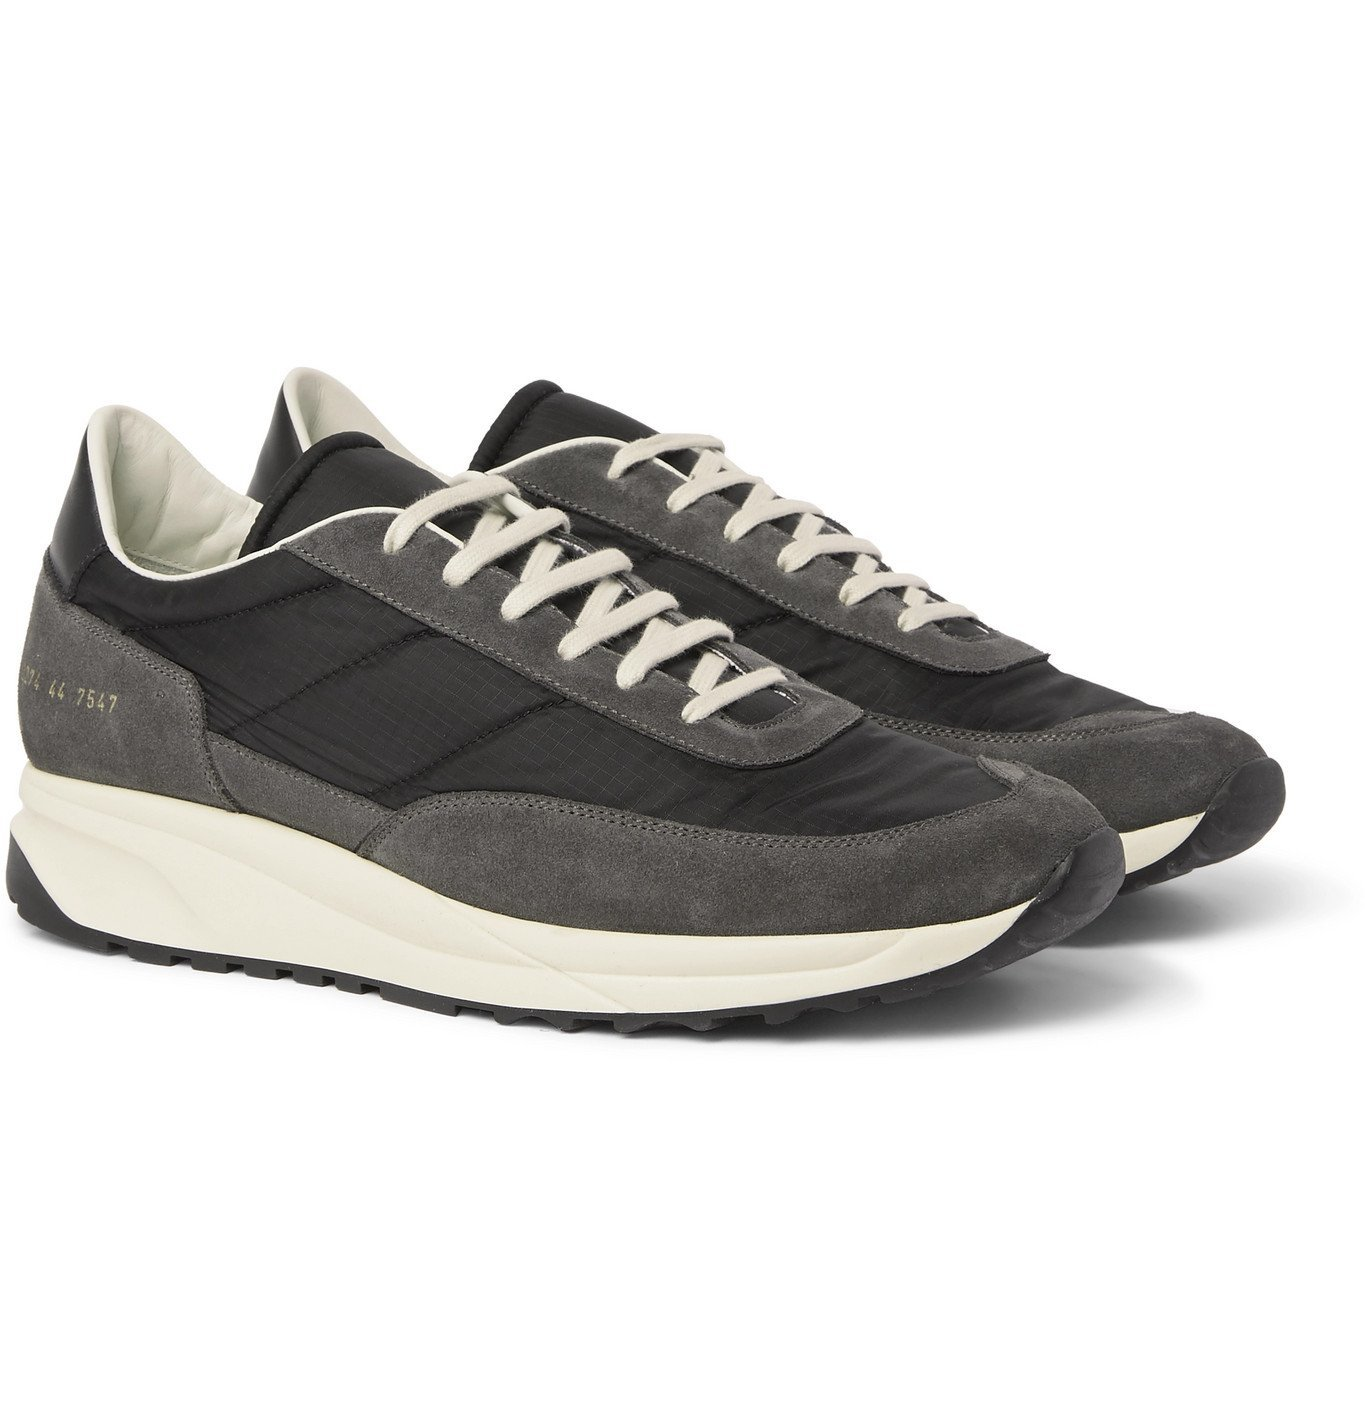 Common Projects - Track Classic Leather-Trimmed Suede and Ripstop Sneakers - Black